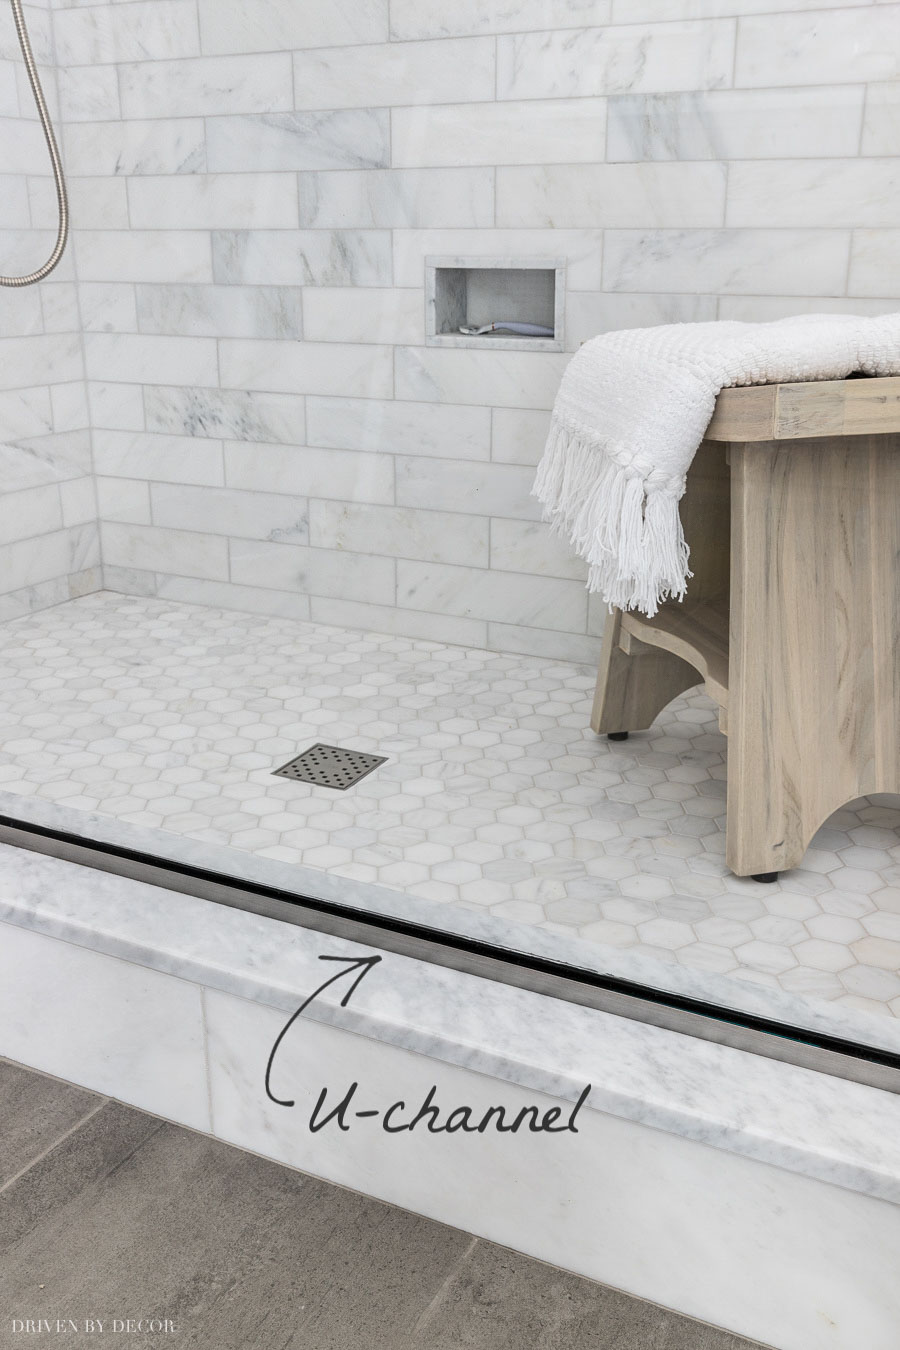 Great tip on U-channel vs clips for glass shower enclosures!